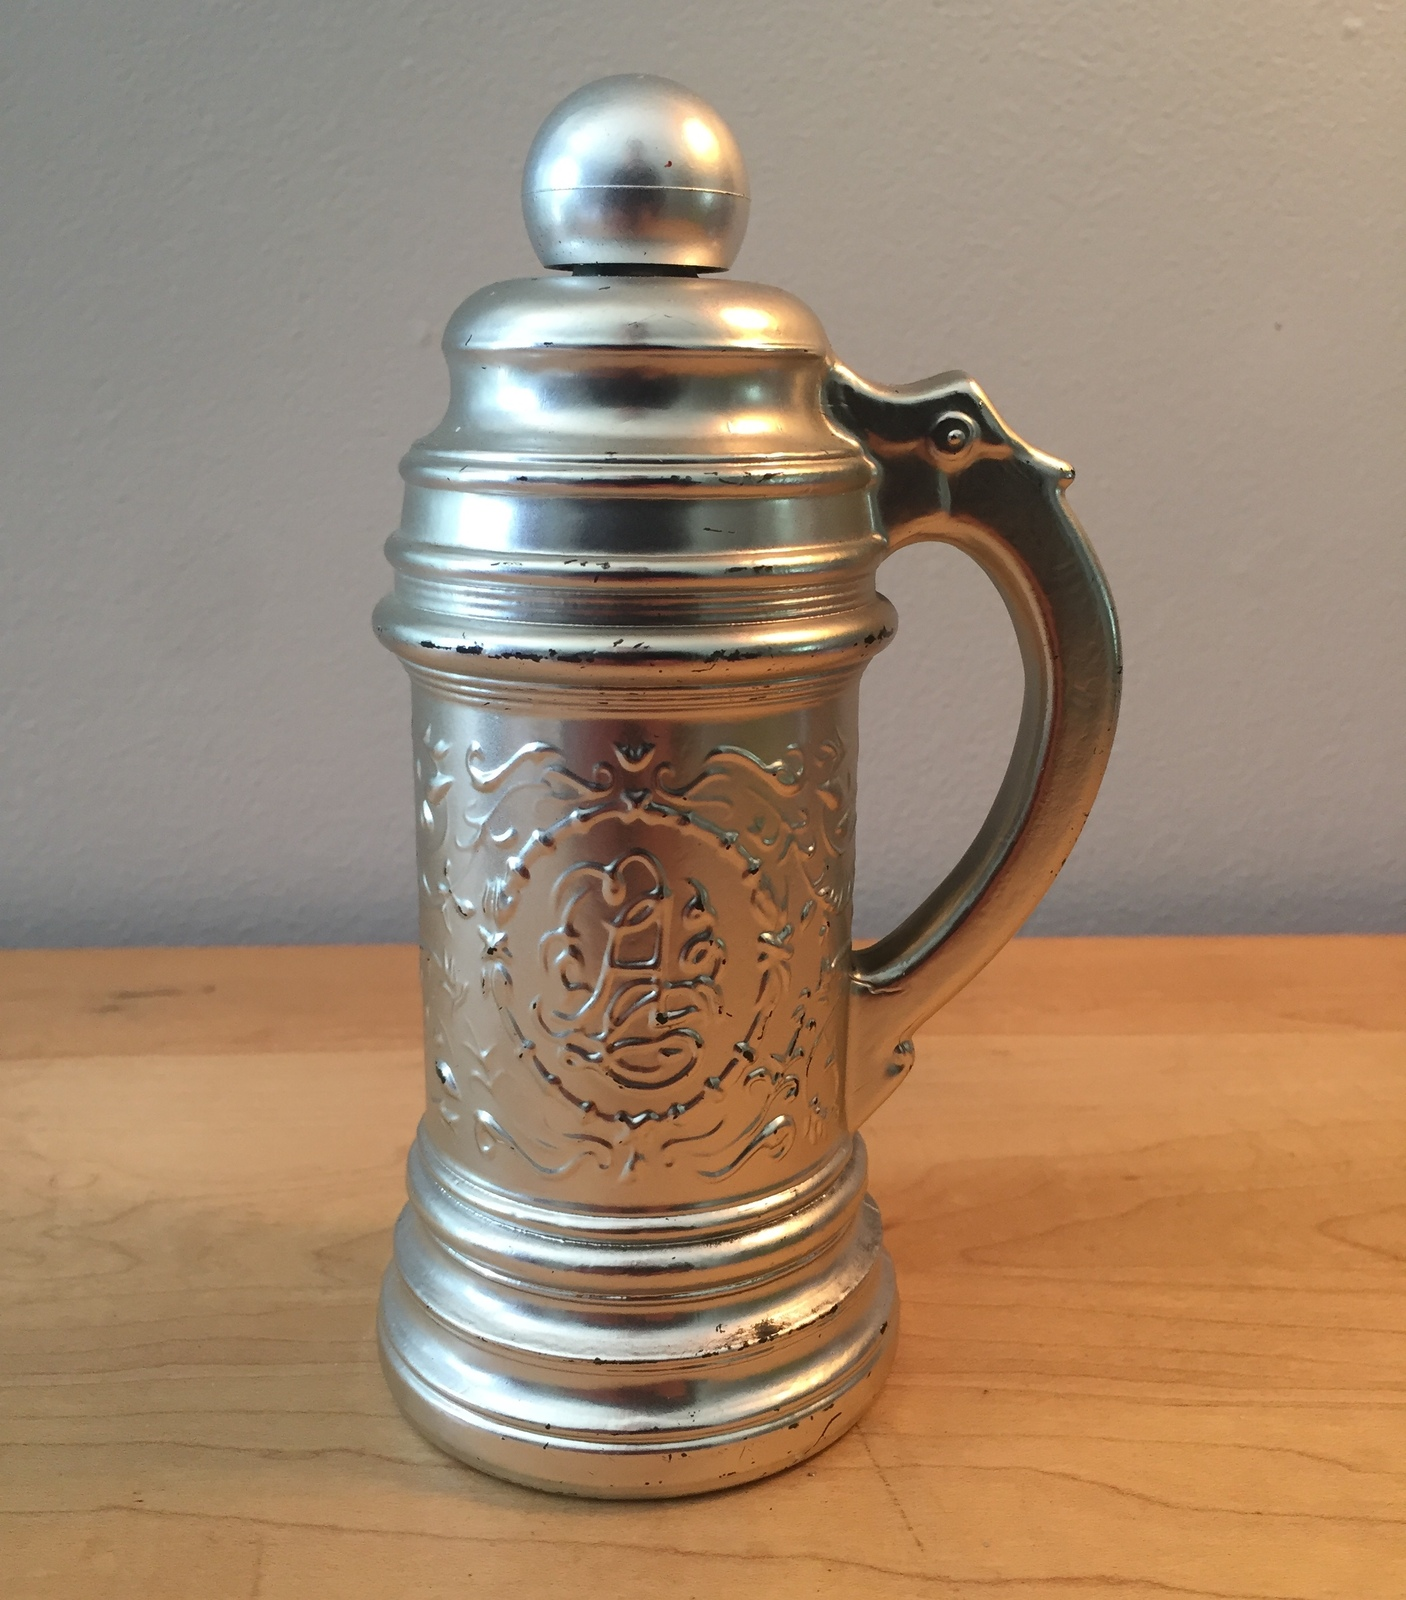 70s Avon Silver Beer Stein after shave bottle with handle (Tribute)